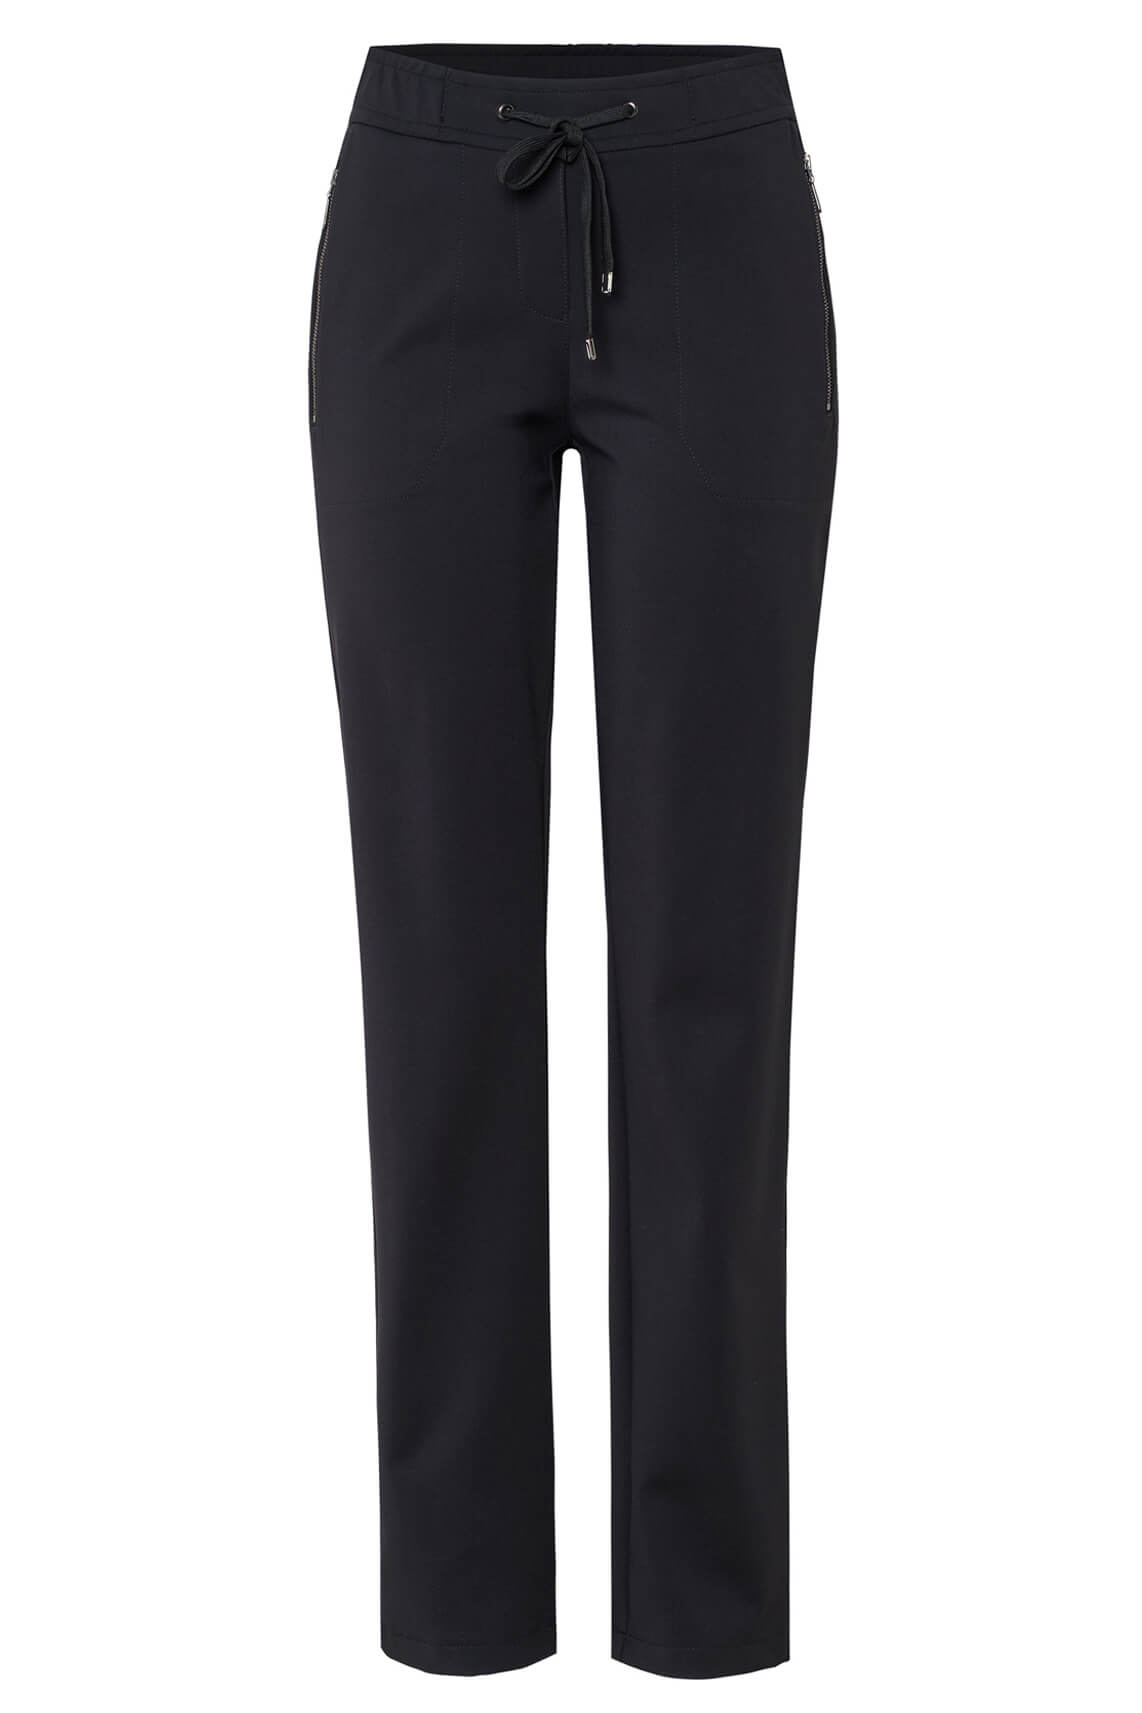 Rosner Dames L32 May jogpantalon zwart